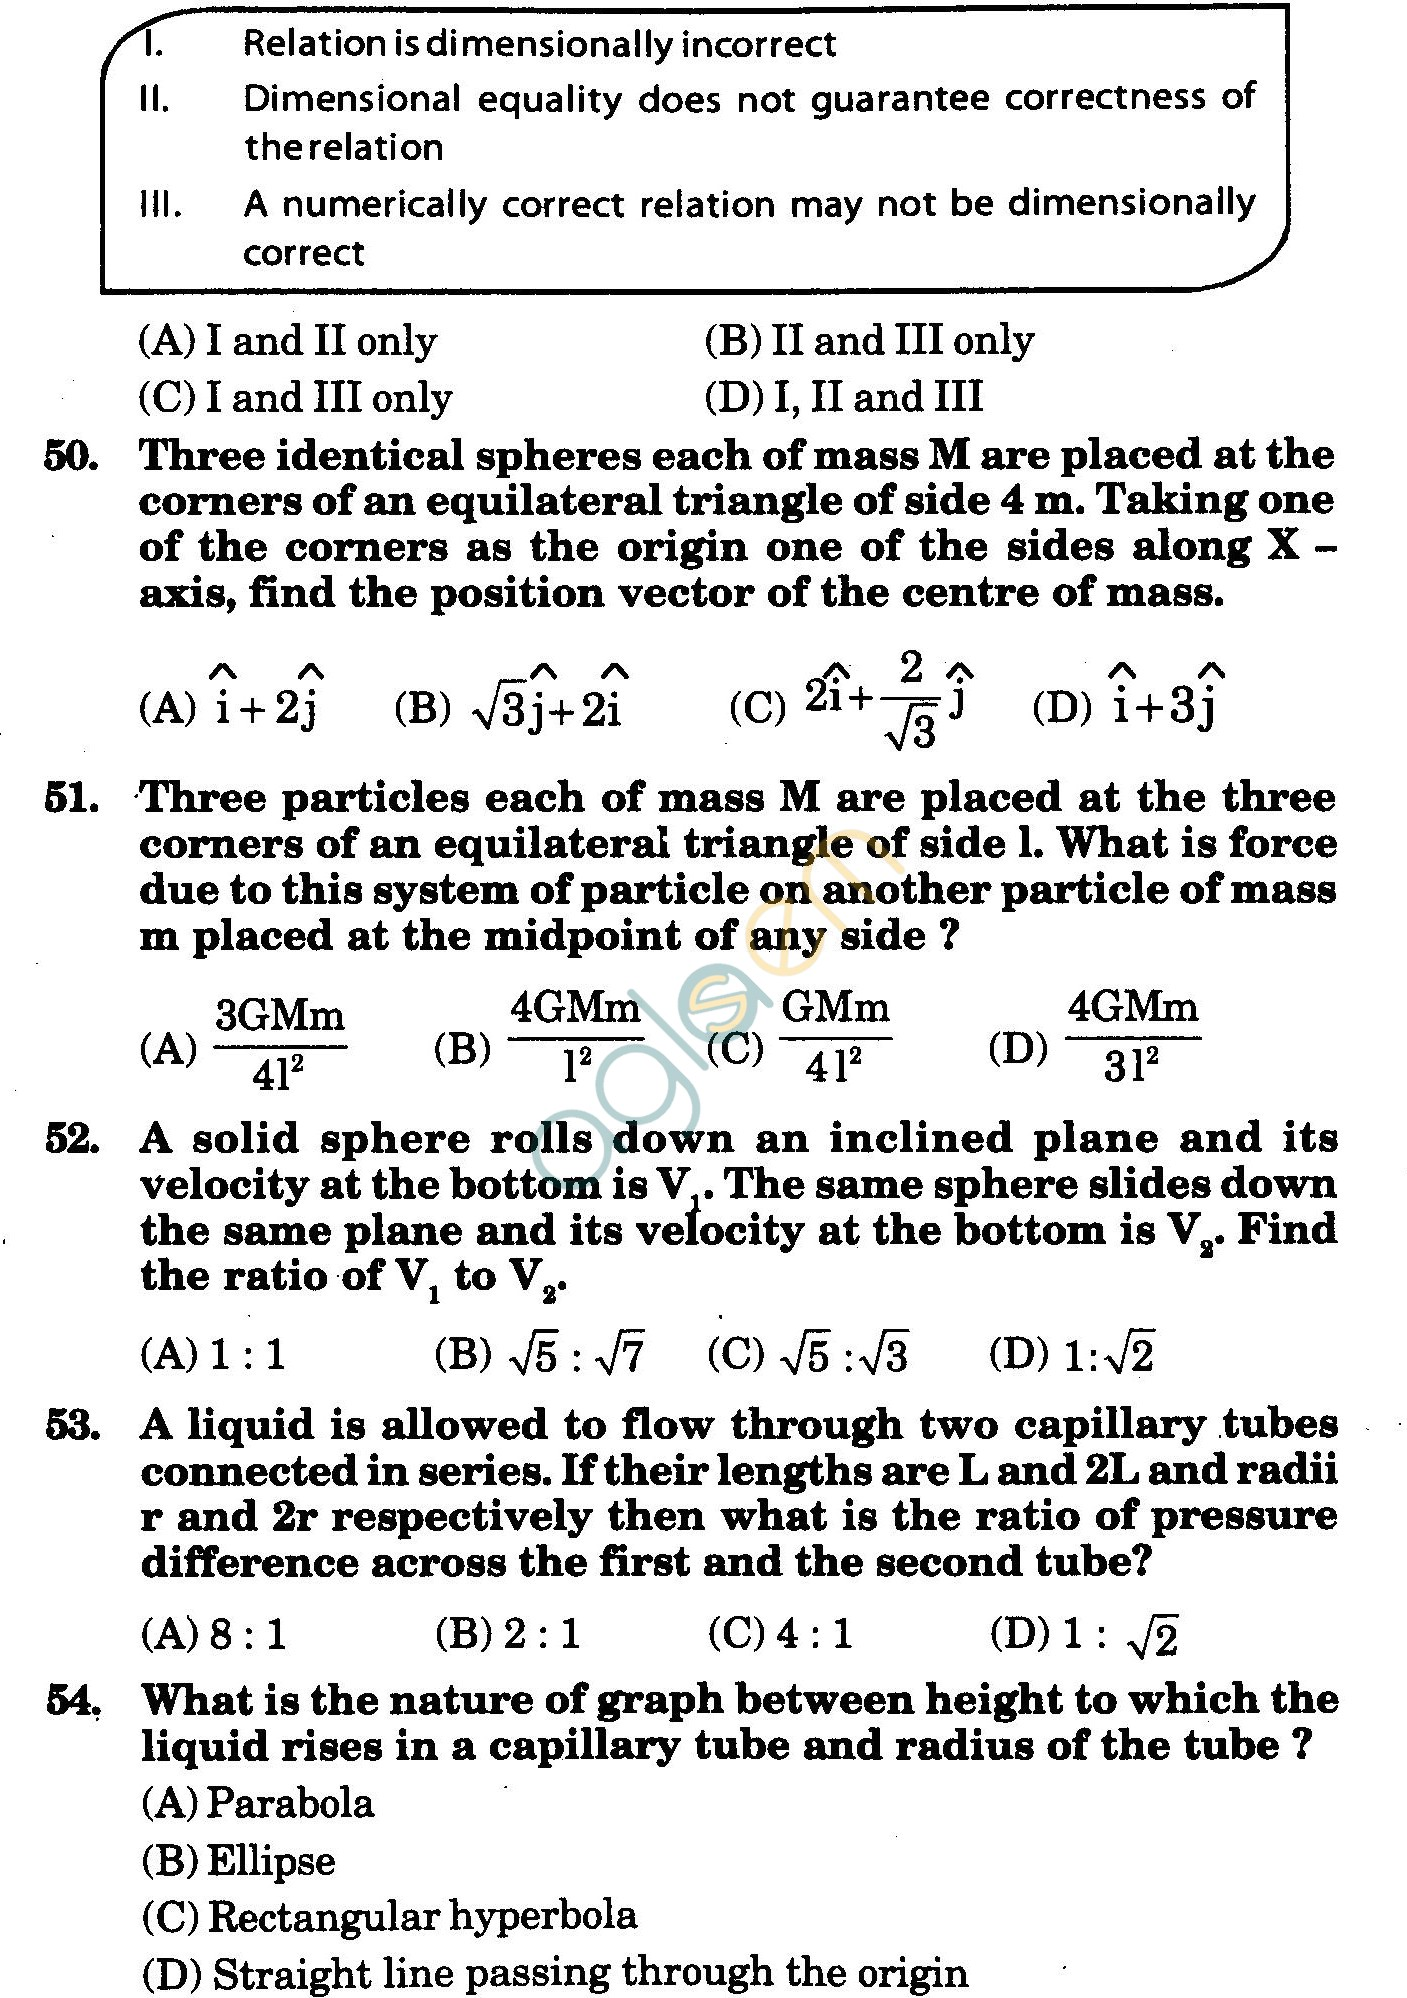 NSTSE 2010 Class XI PCM Question Paper with Answers - Physics